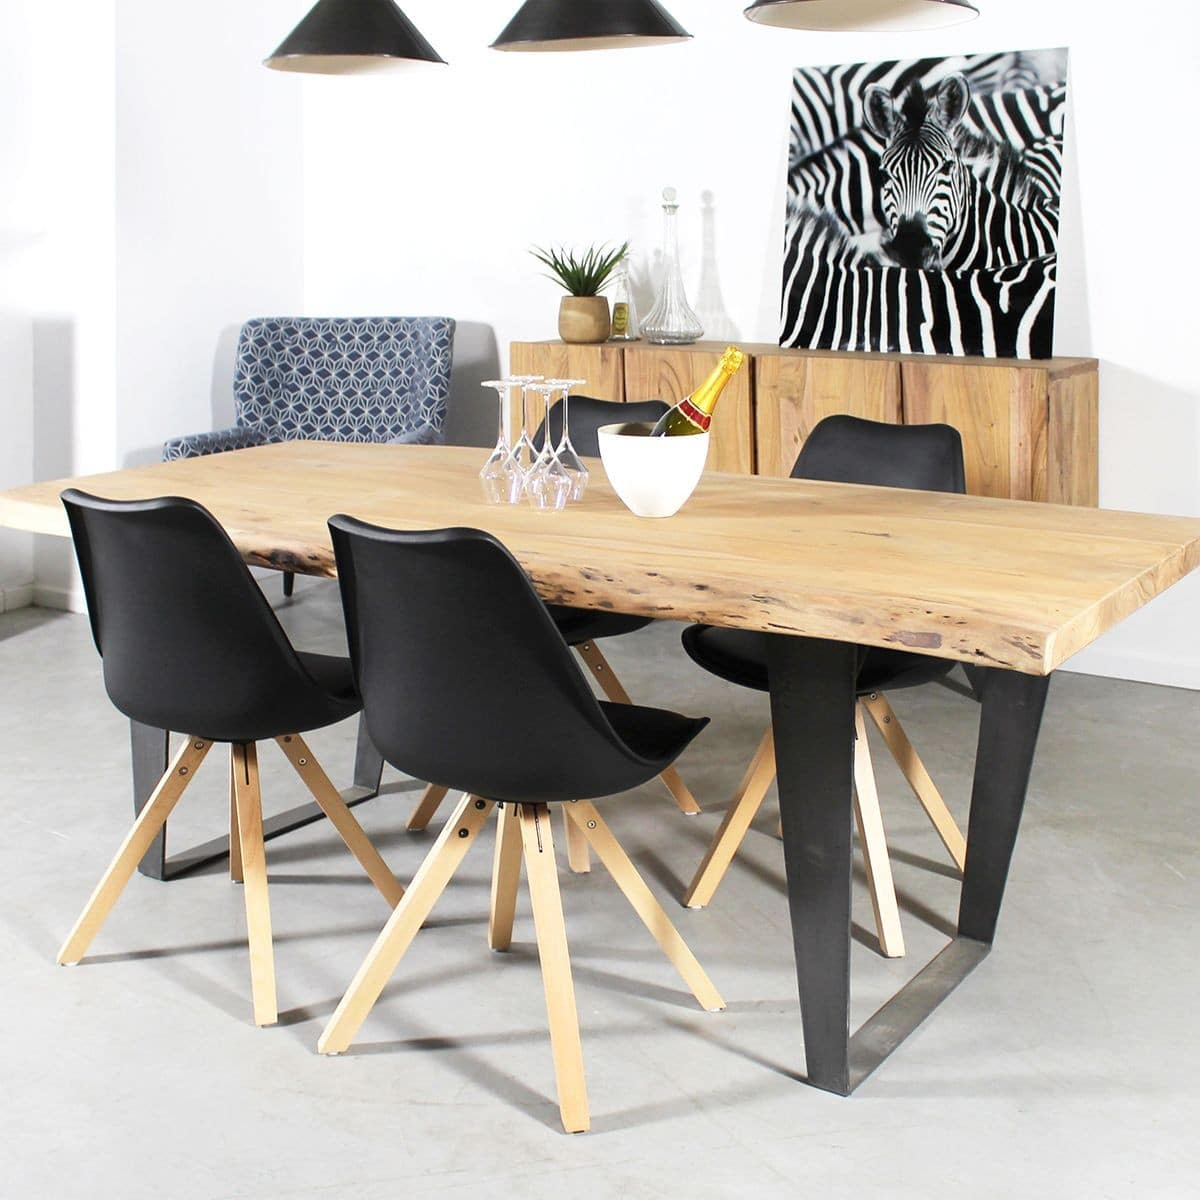 table industrielle 30 mod les exceptionnels partir de 100 euros 2018. Black Bedroom Furniture Sets. Home Design Ideas